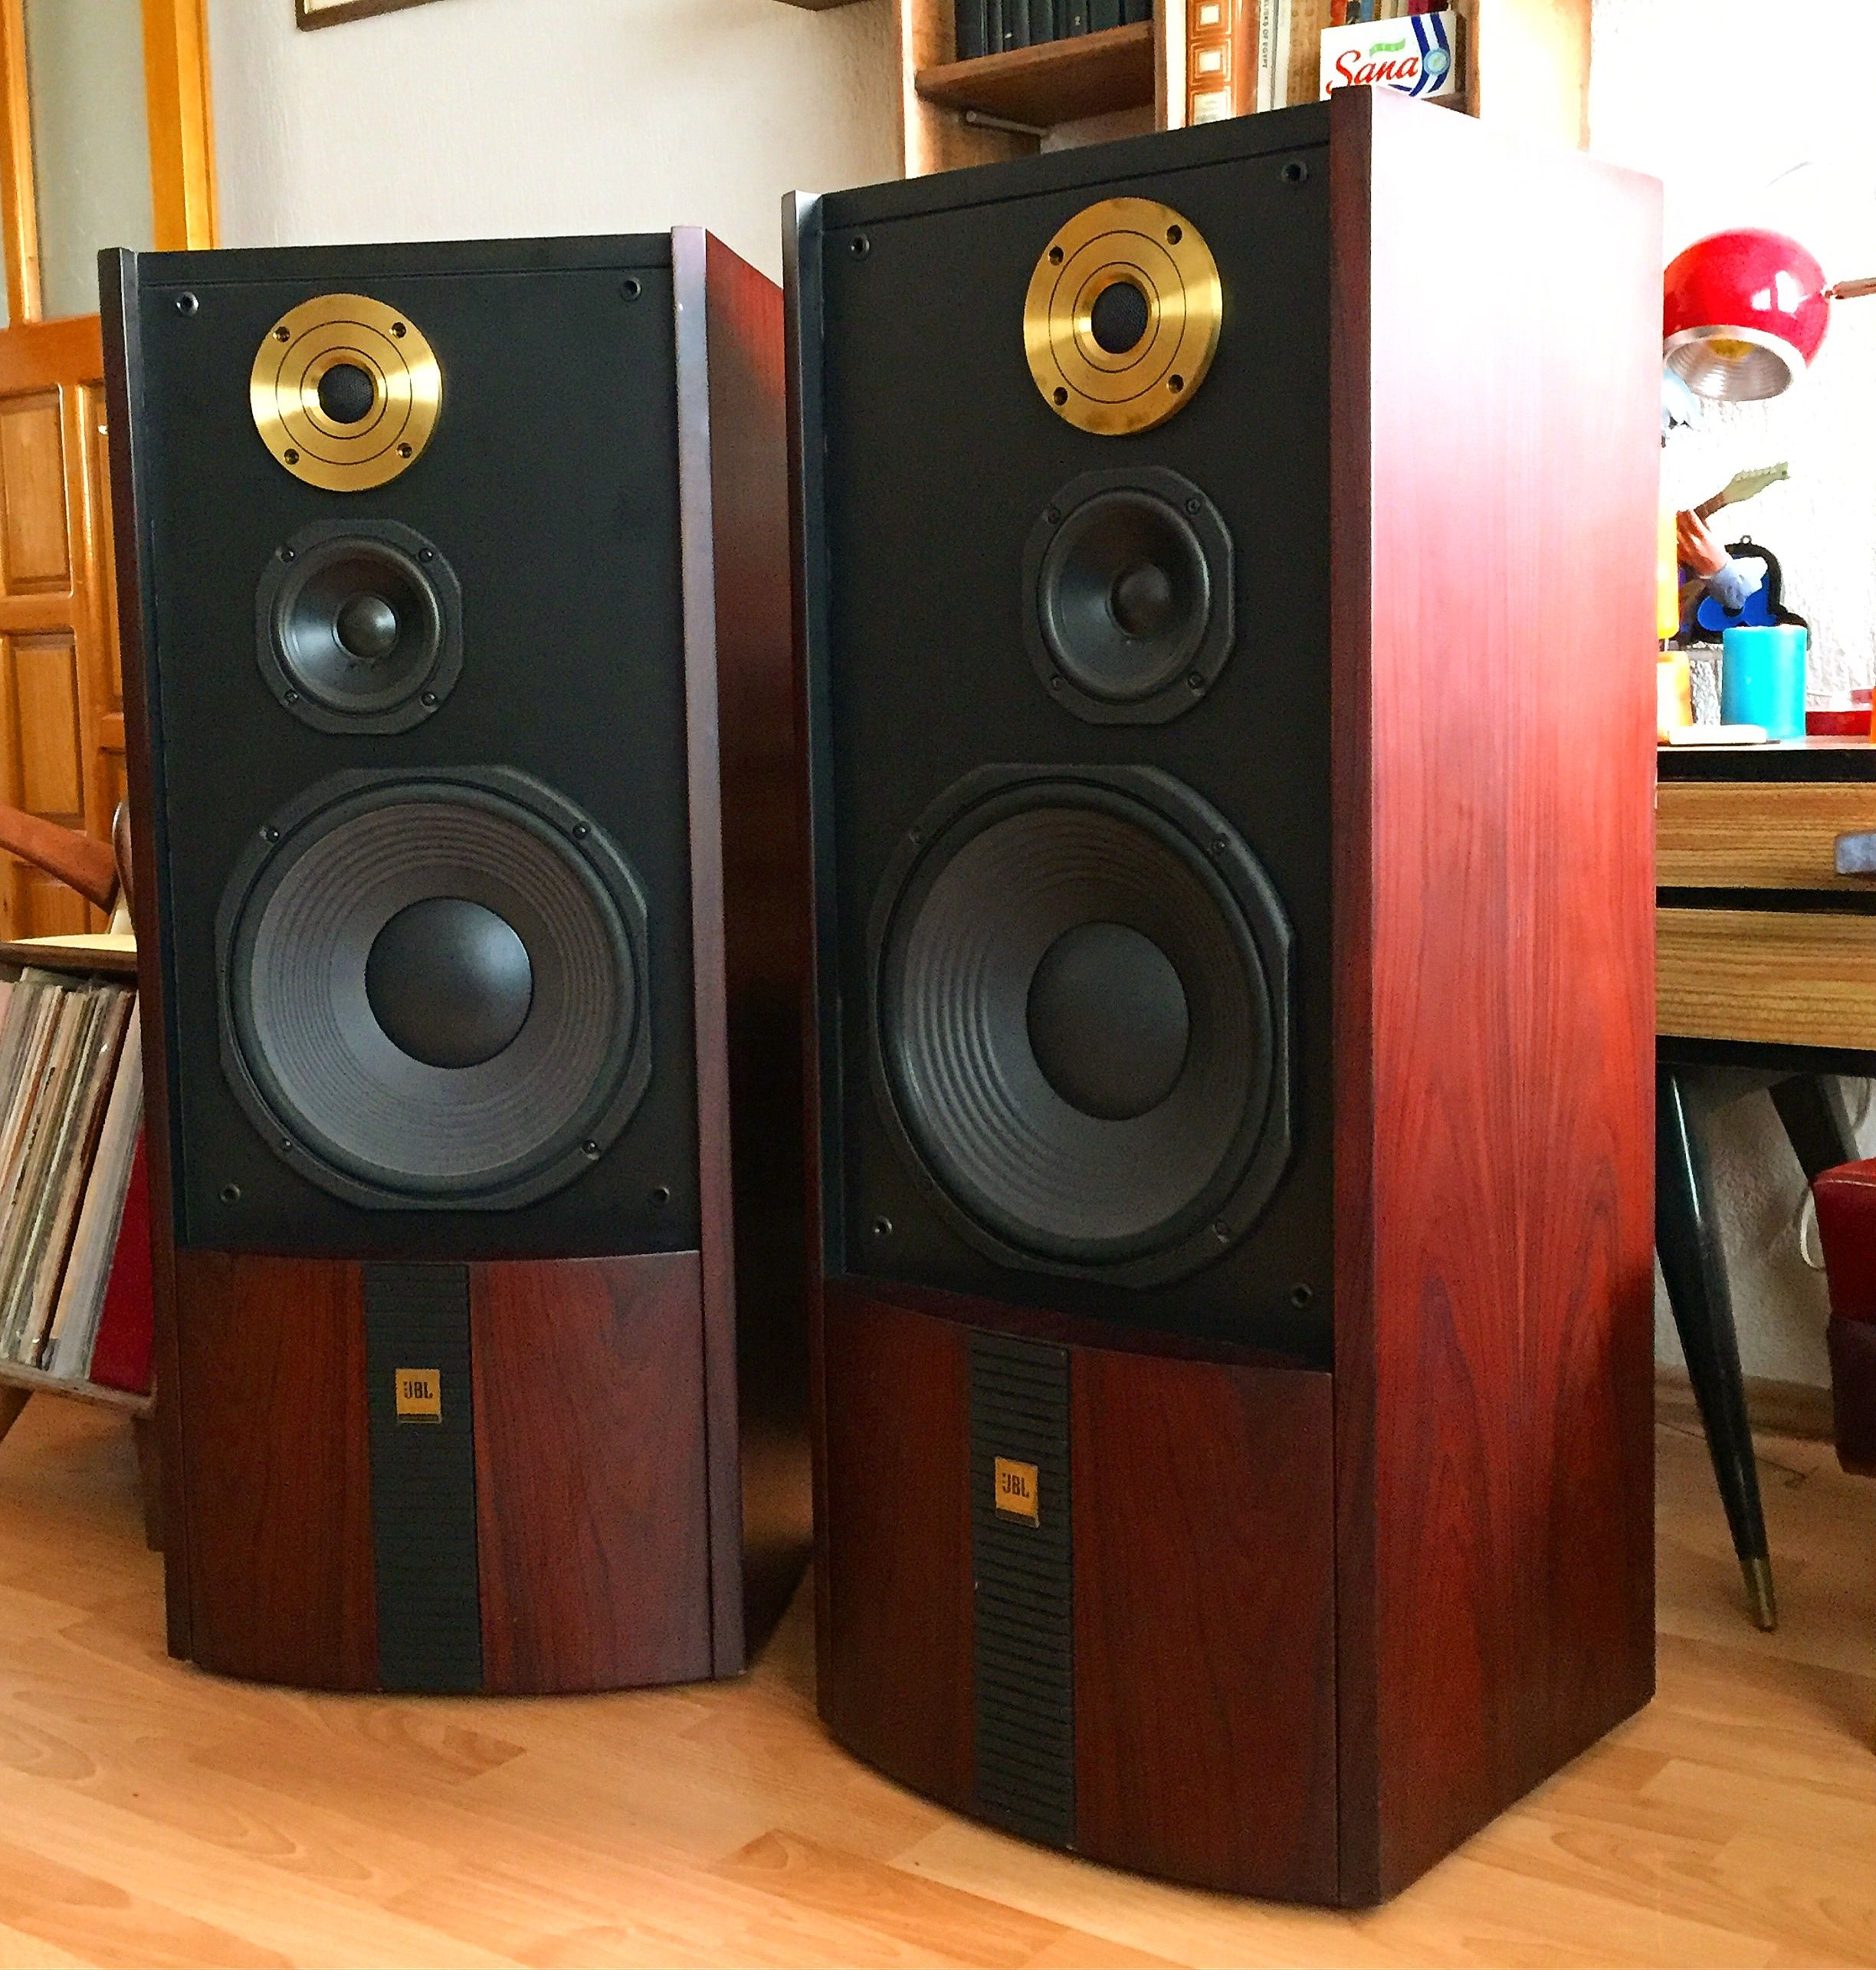 Jbl Gold Special Edition Series6 Stereovintage Vintage Speakers Audiophile Speakers Loudspeaker